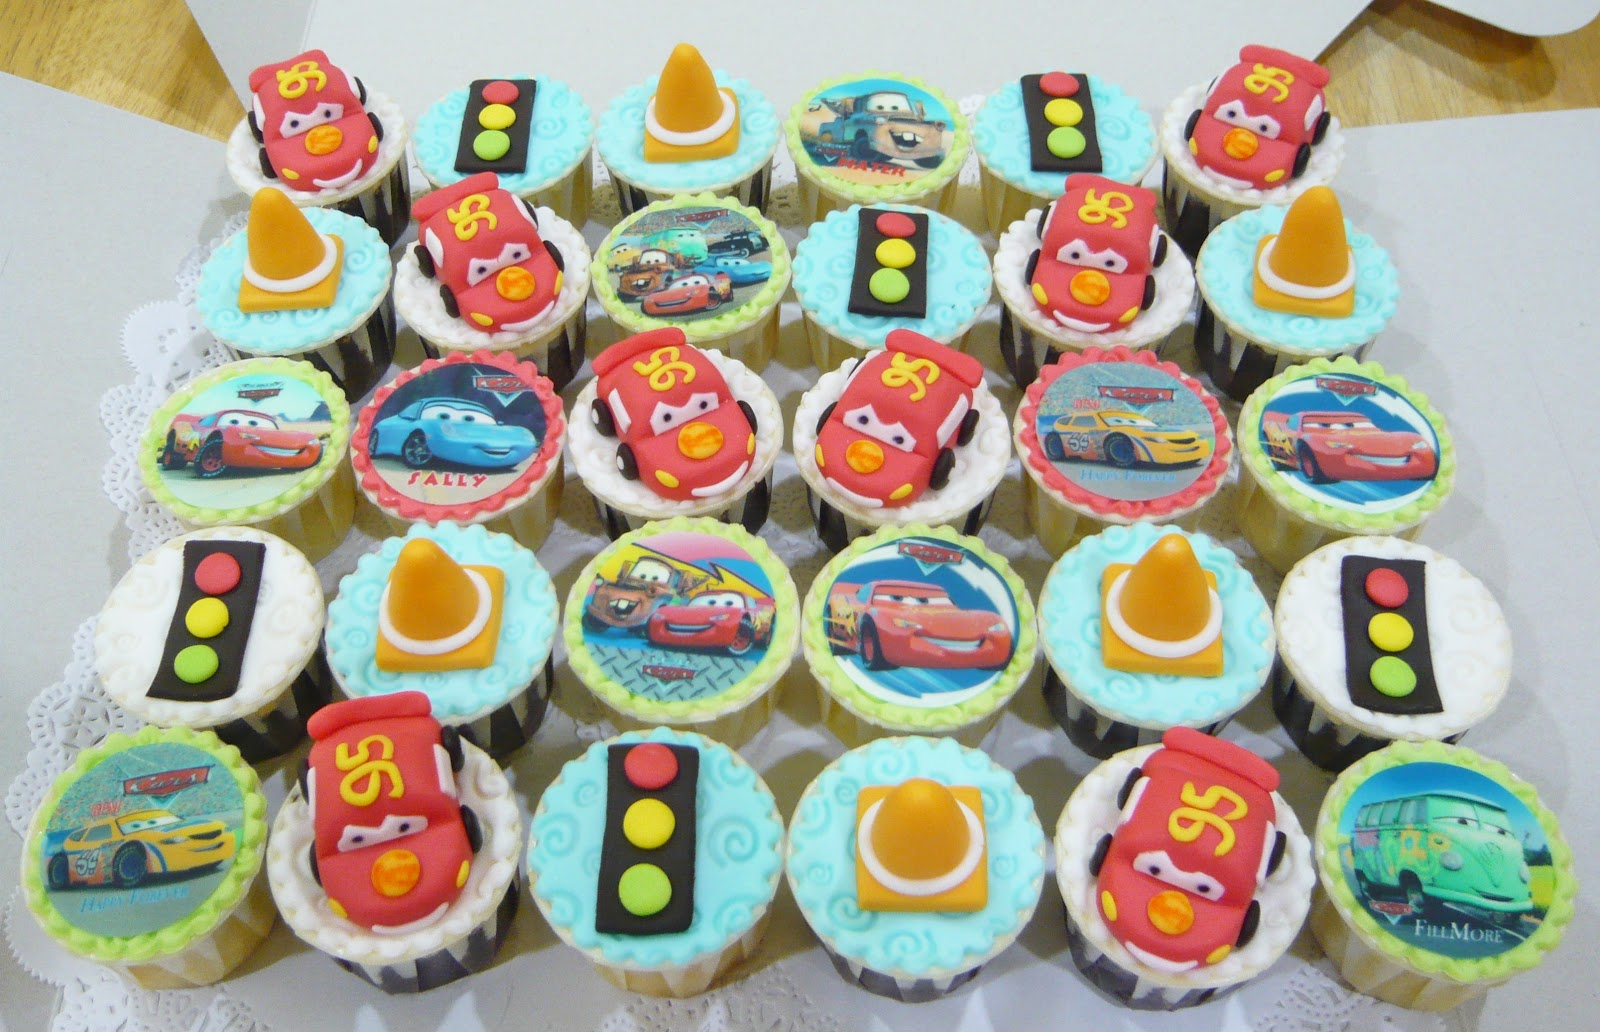 Jenn Cupcakes Muffins Lightning McQueen theme Cake and Cupcakes